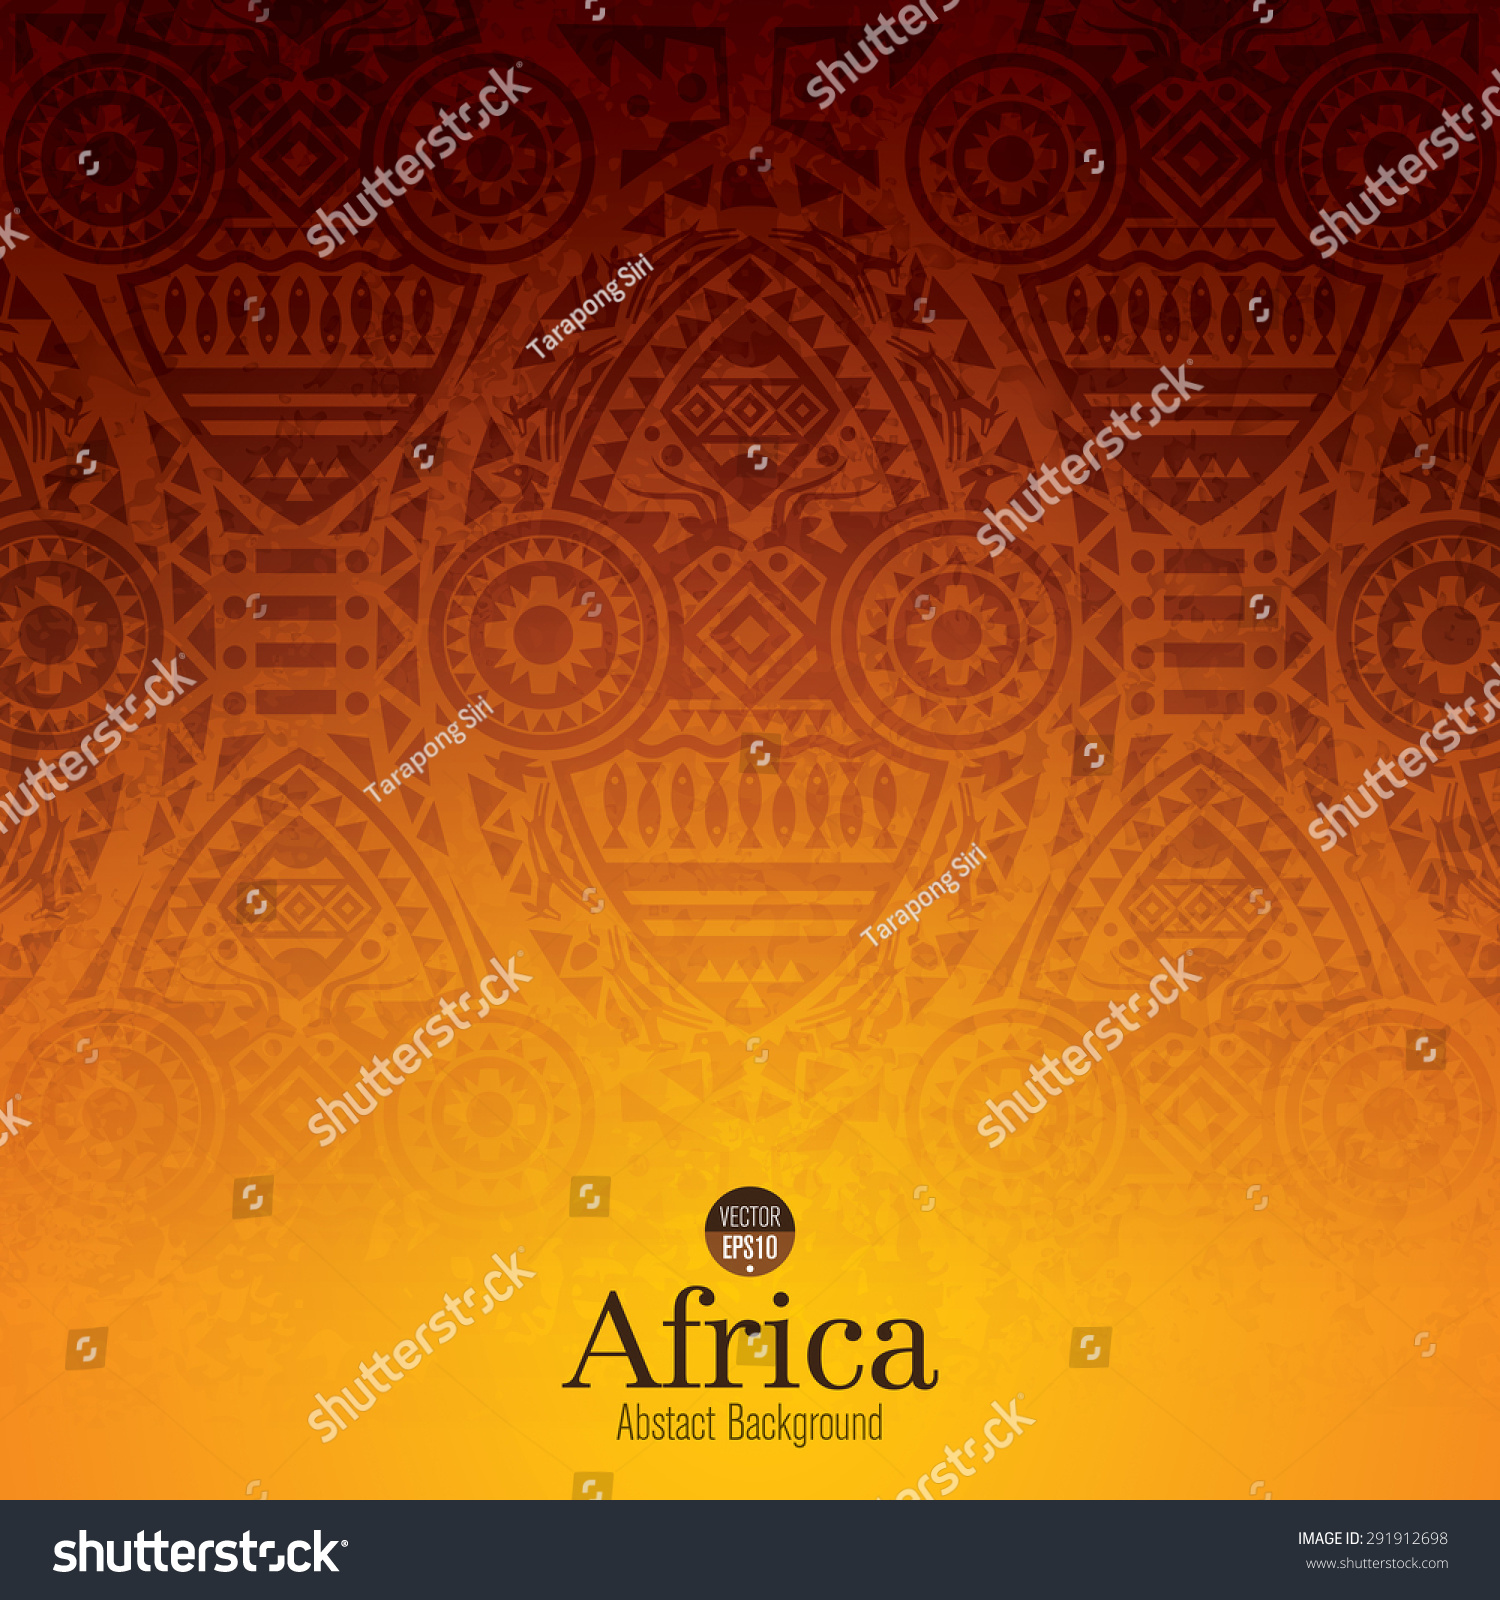 Book Cover Design Websites : African art background design can be stock vector